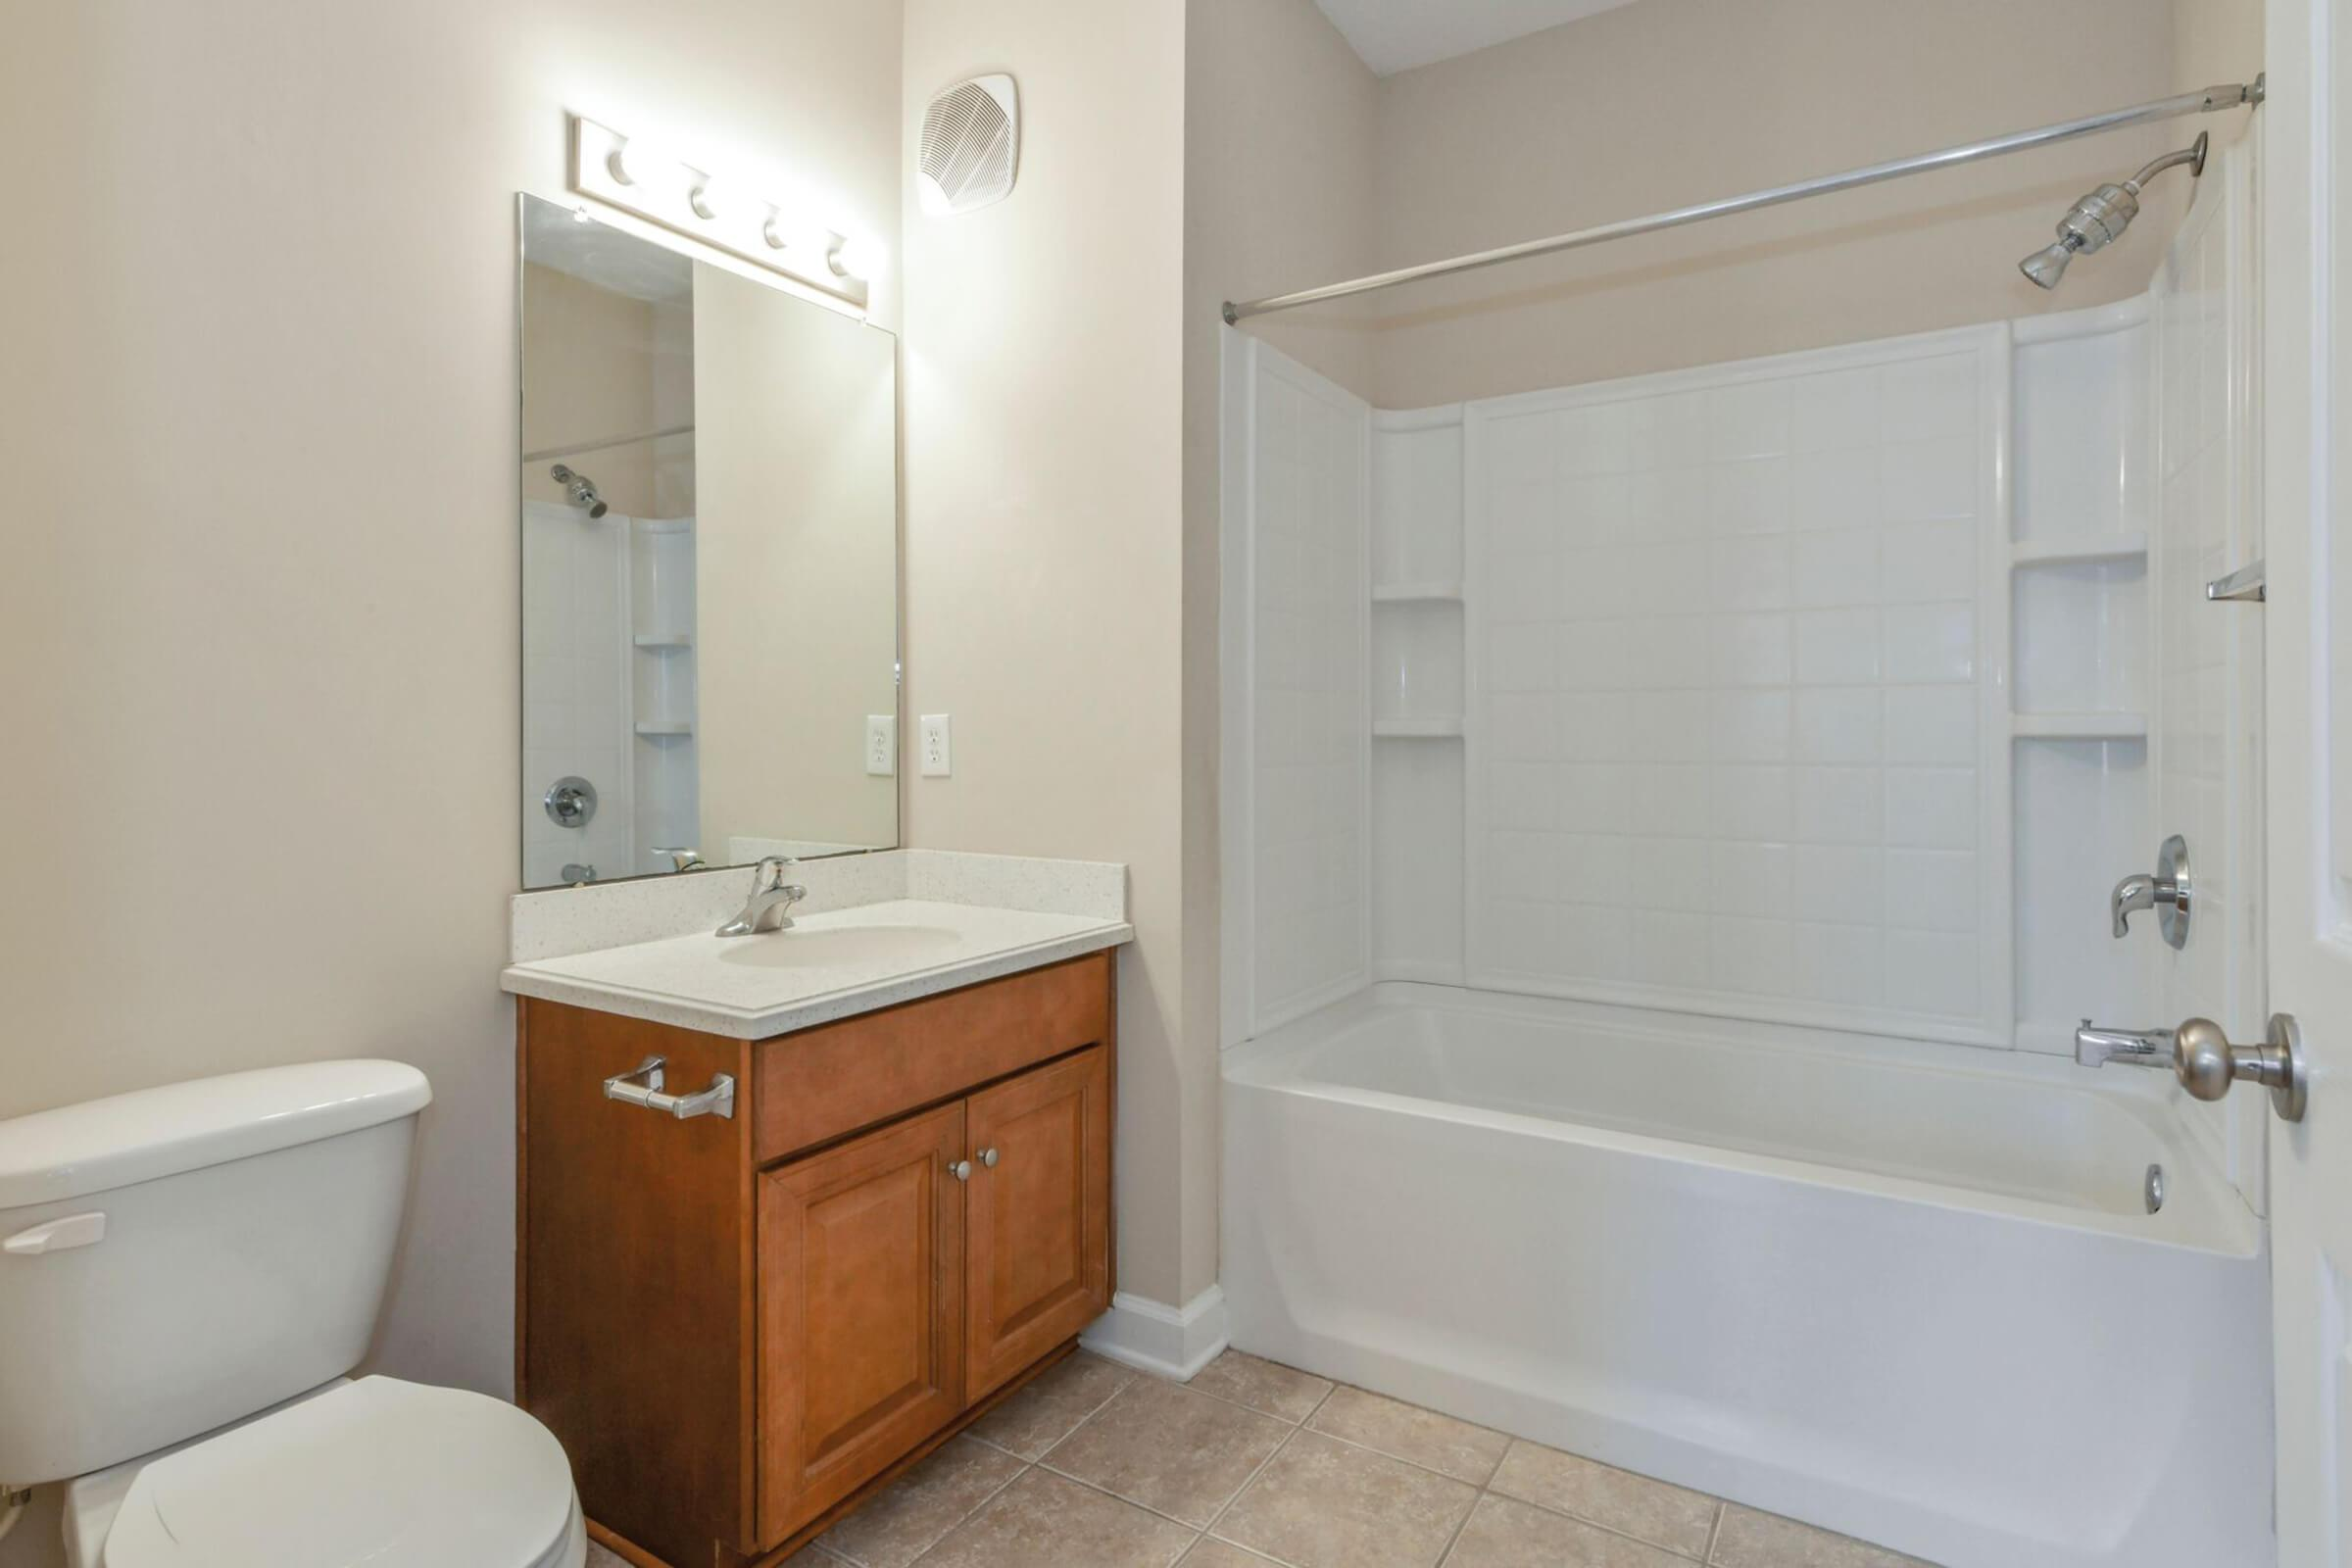 a large white tub sitting next to a shower